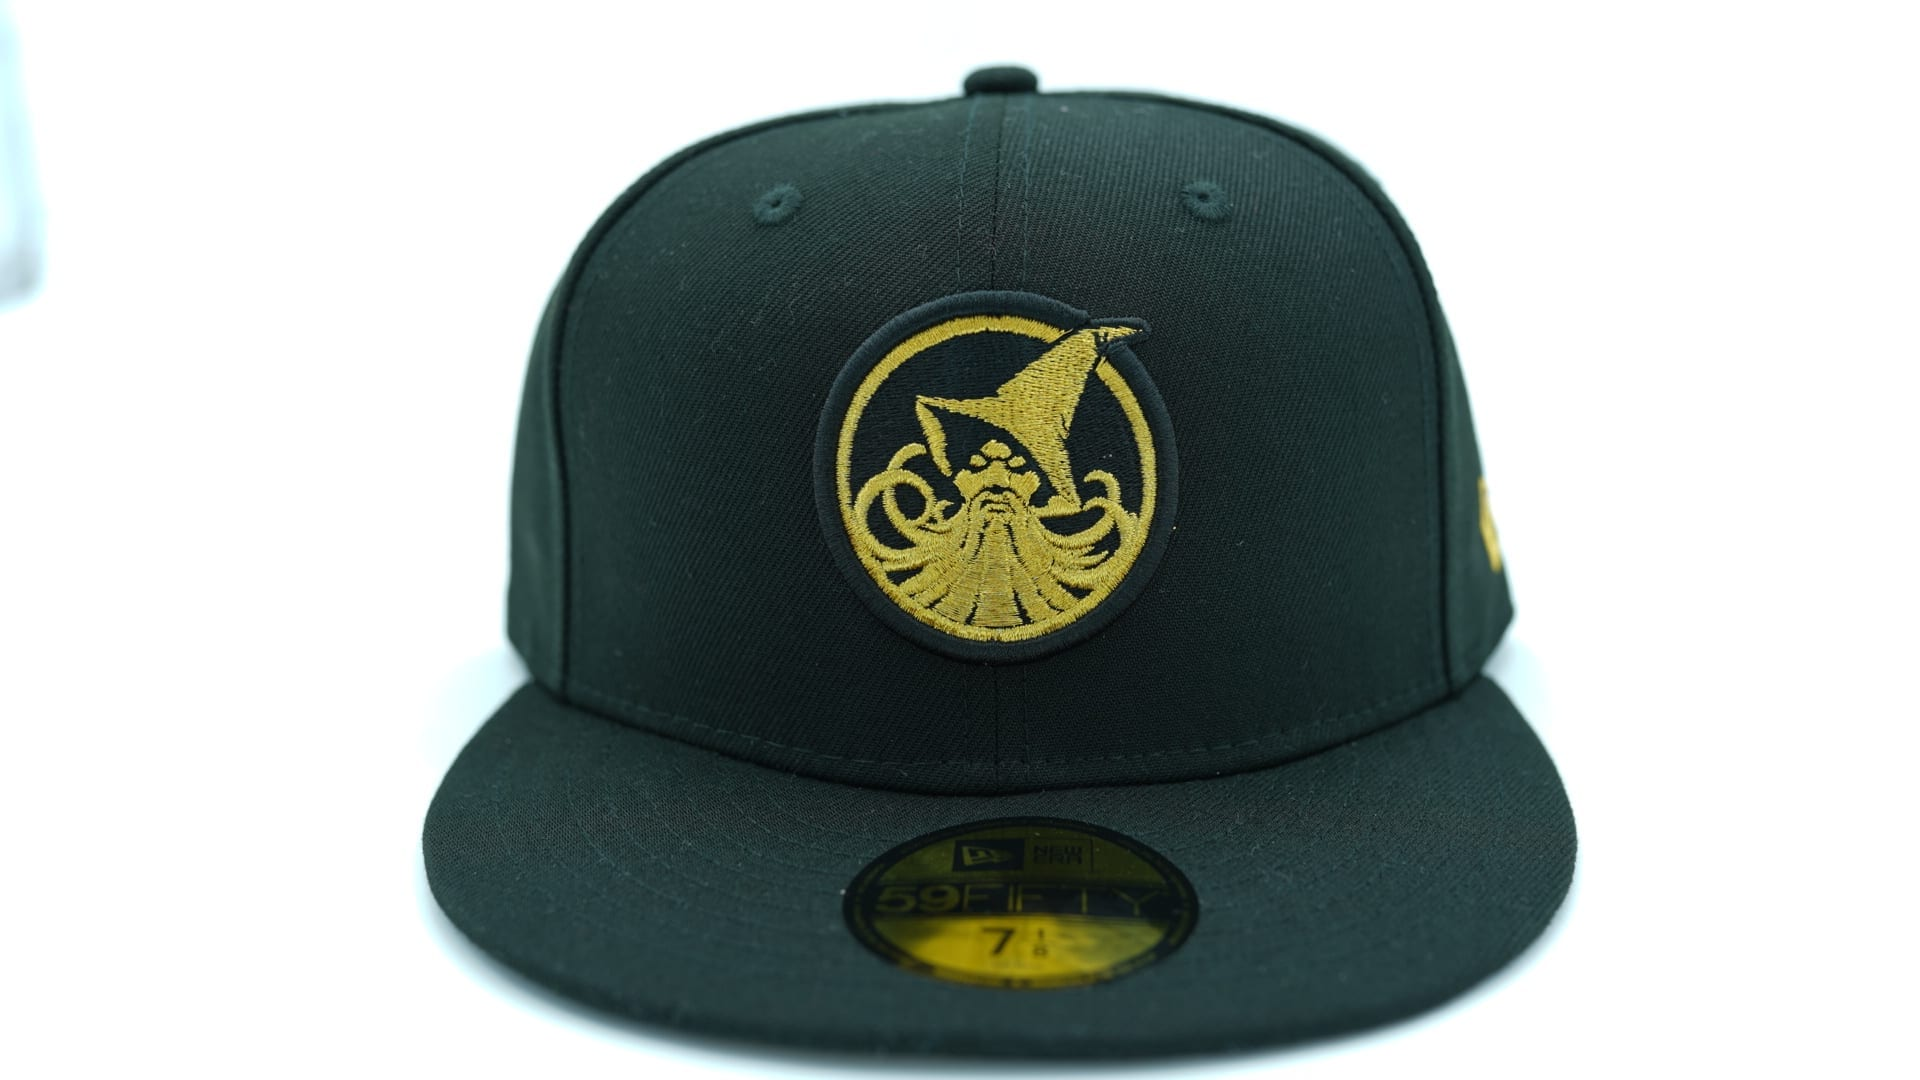 save off 15a10 4a309 NEW ERA x MLB「Miami Marlins 59Fifty 59th Anniversary」59Fifty Fitted  Baseball Cap